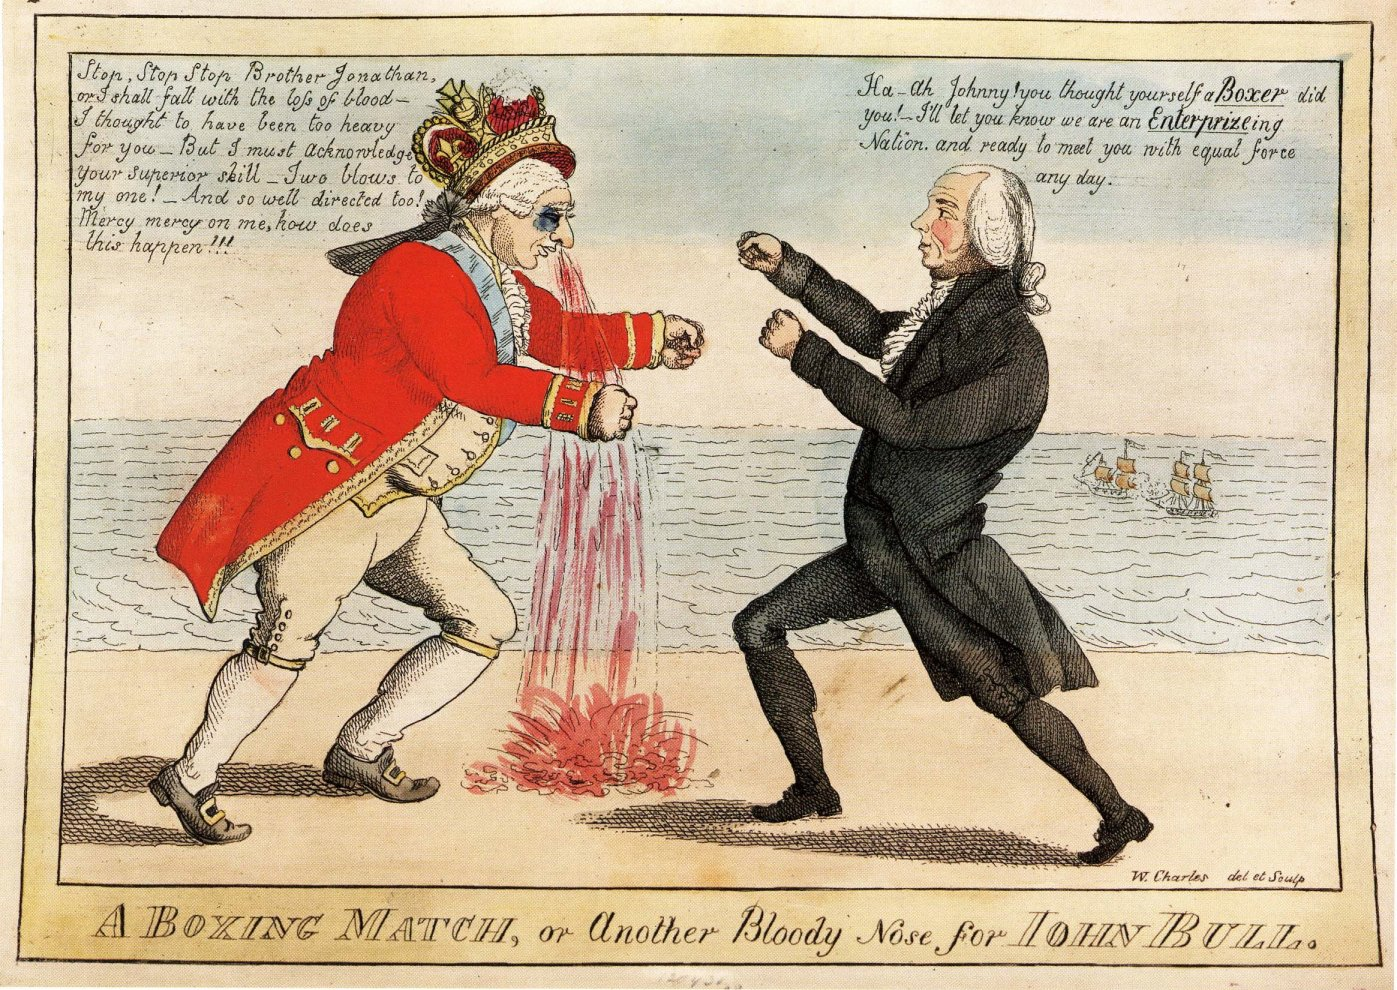 yesterday s papers the war of and its publications 11 a boxing match or another bloody nose for john bull cartoon by william charles 1776 1820